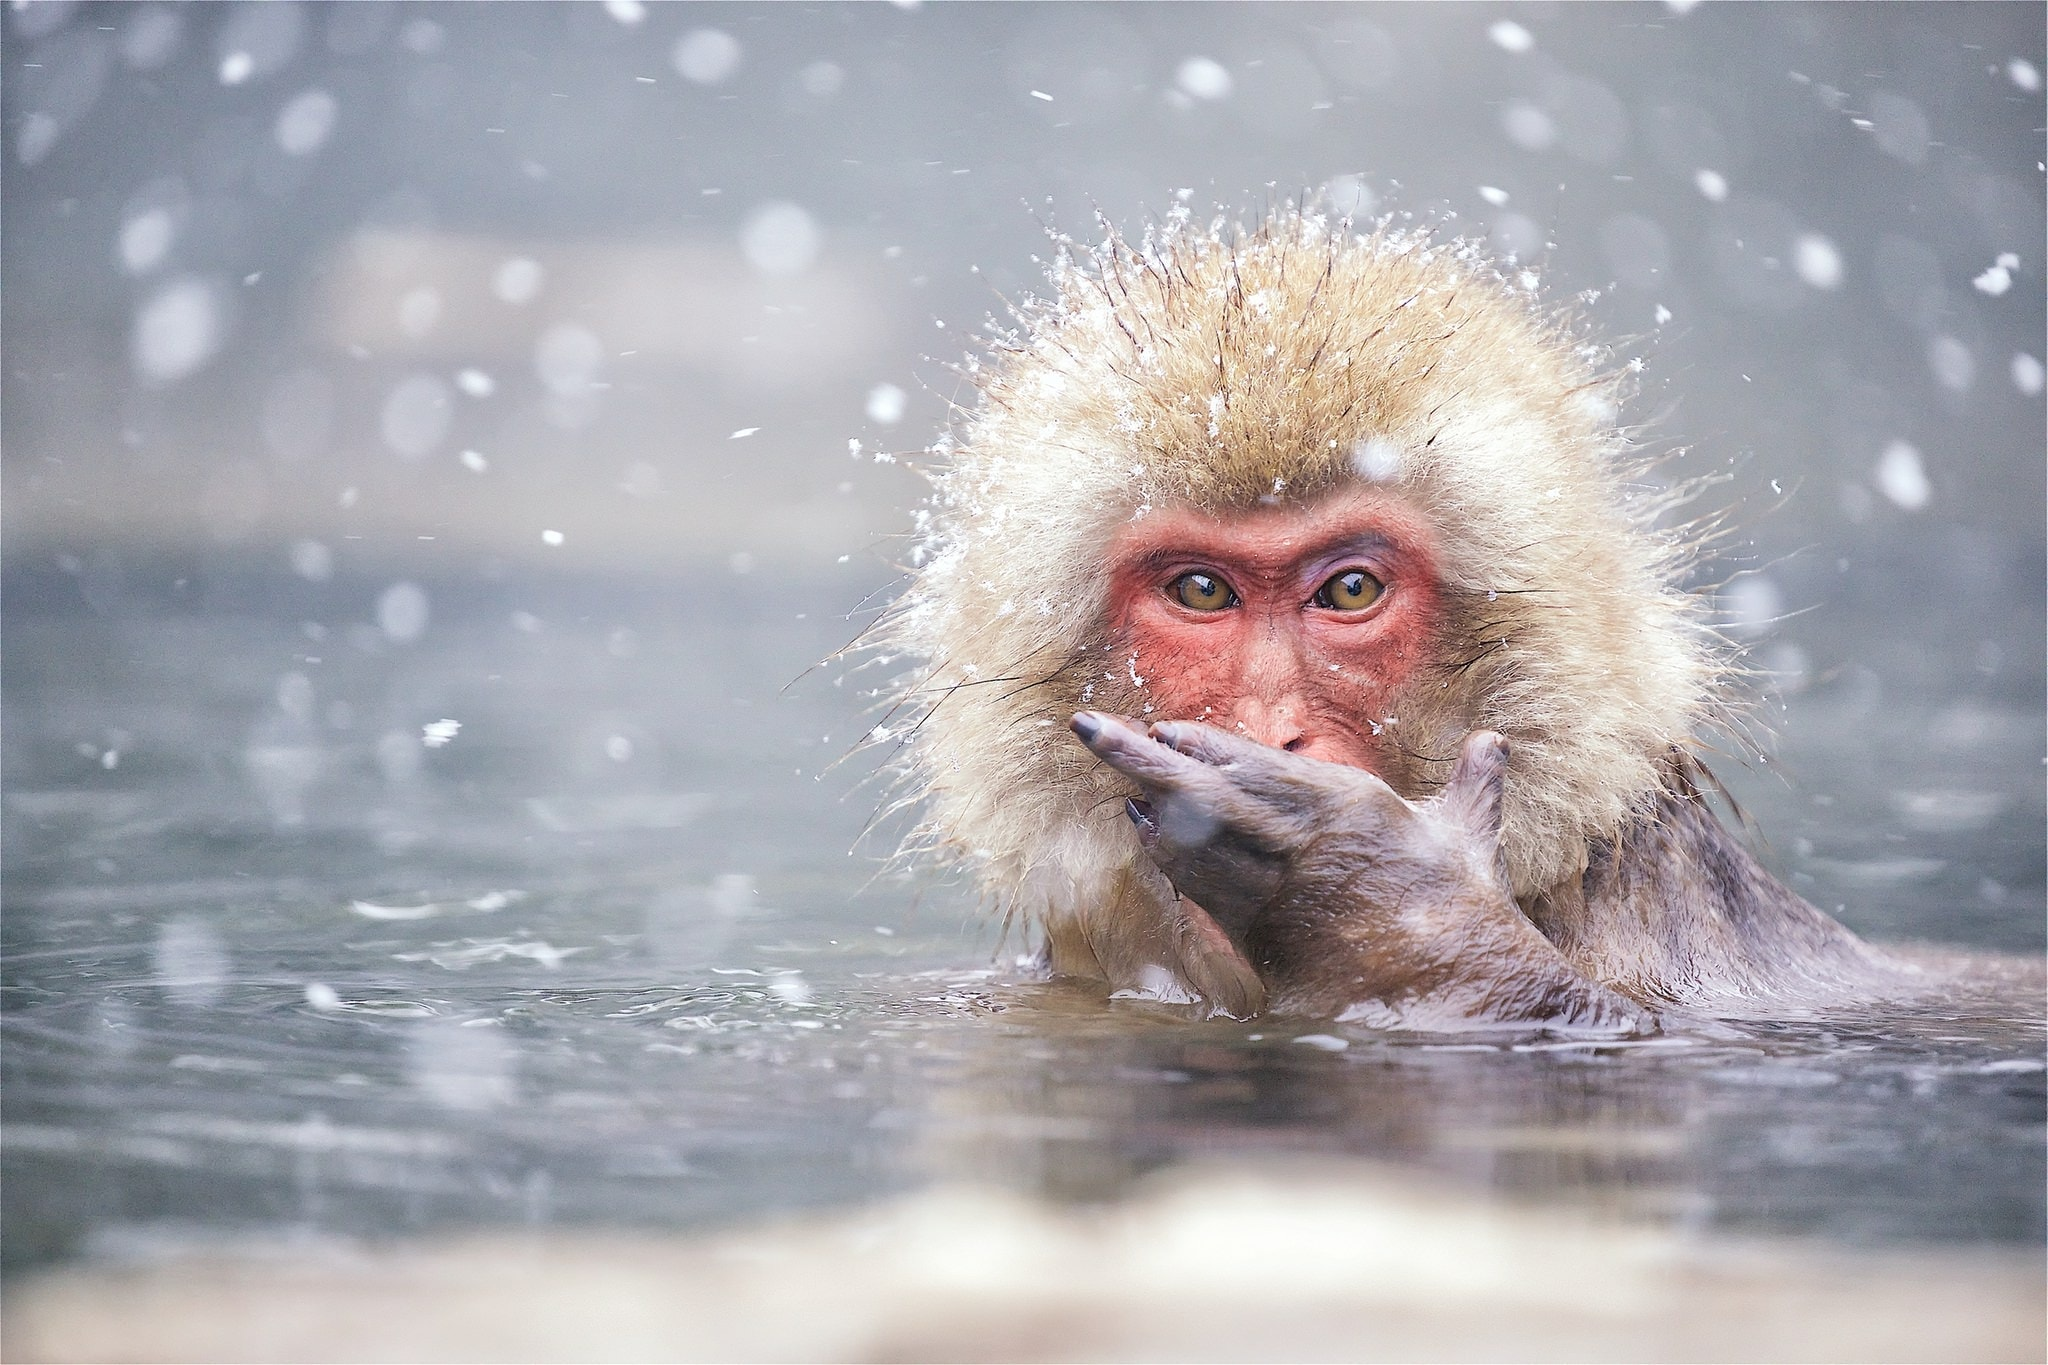 One Of The Bathing Snow Monkeys Of Jigokudani Yaen Koen Photographed During The NaturesLens Winter Wildlife Of Japan Photography Holiday